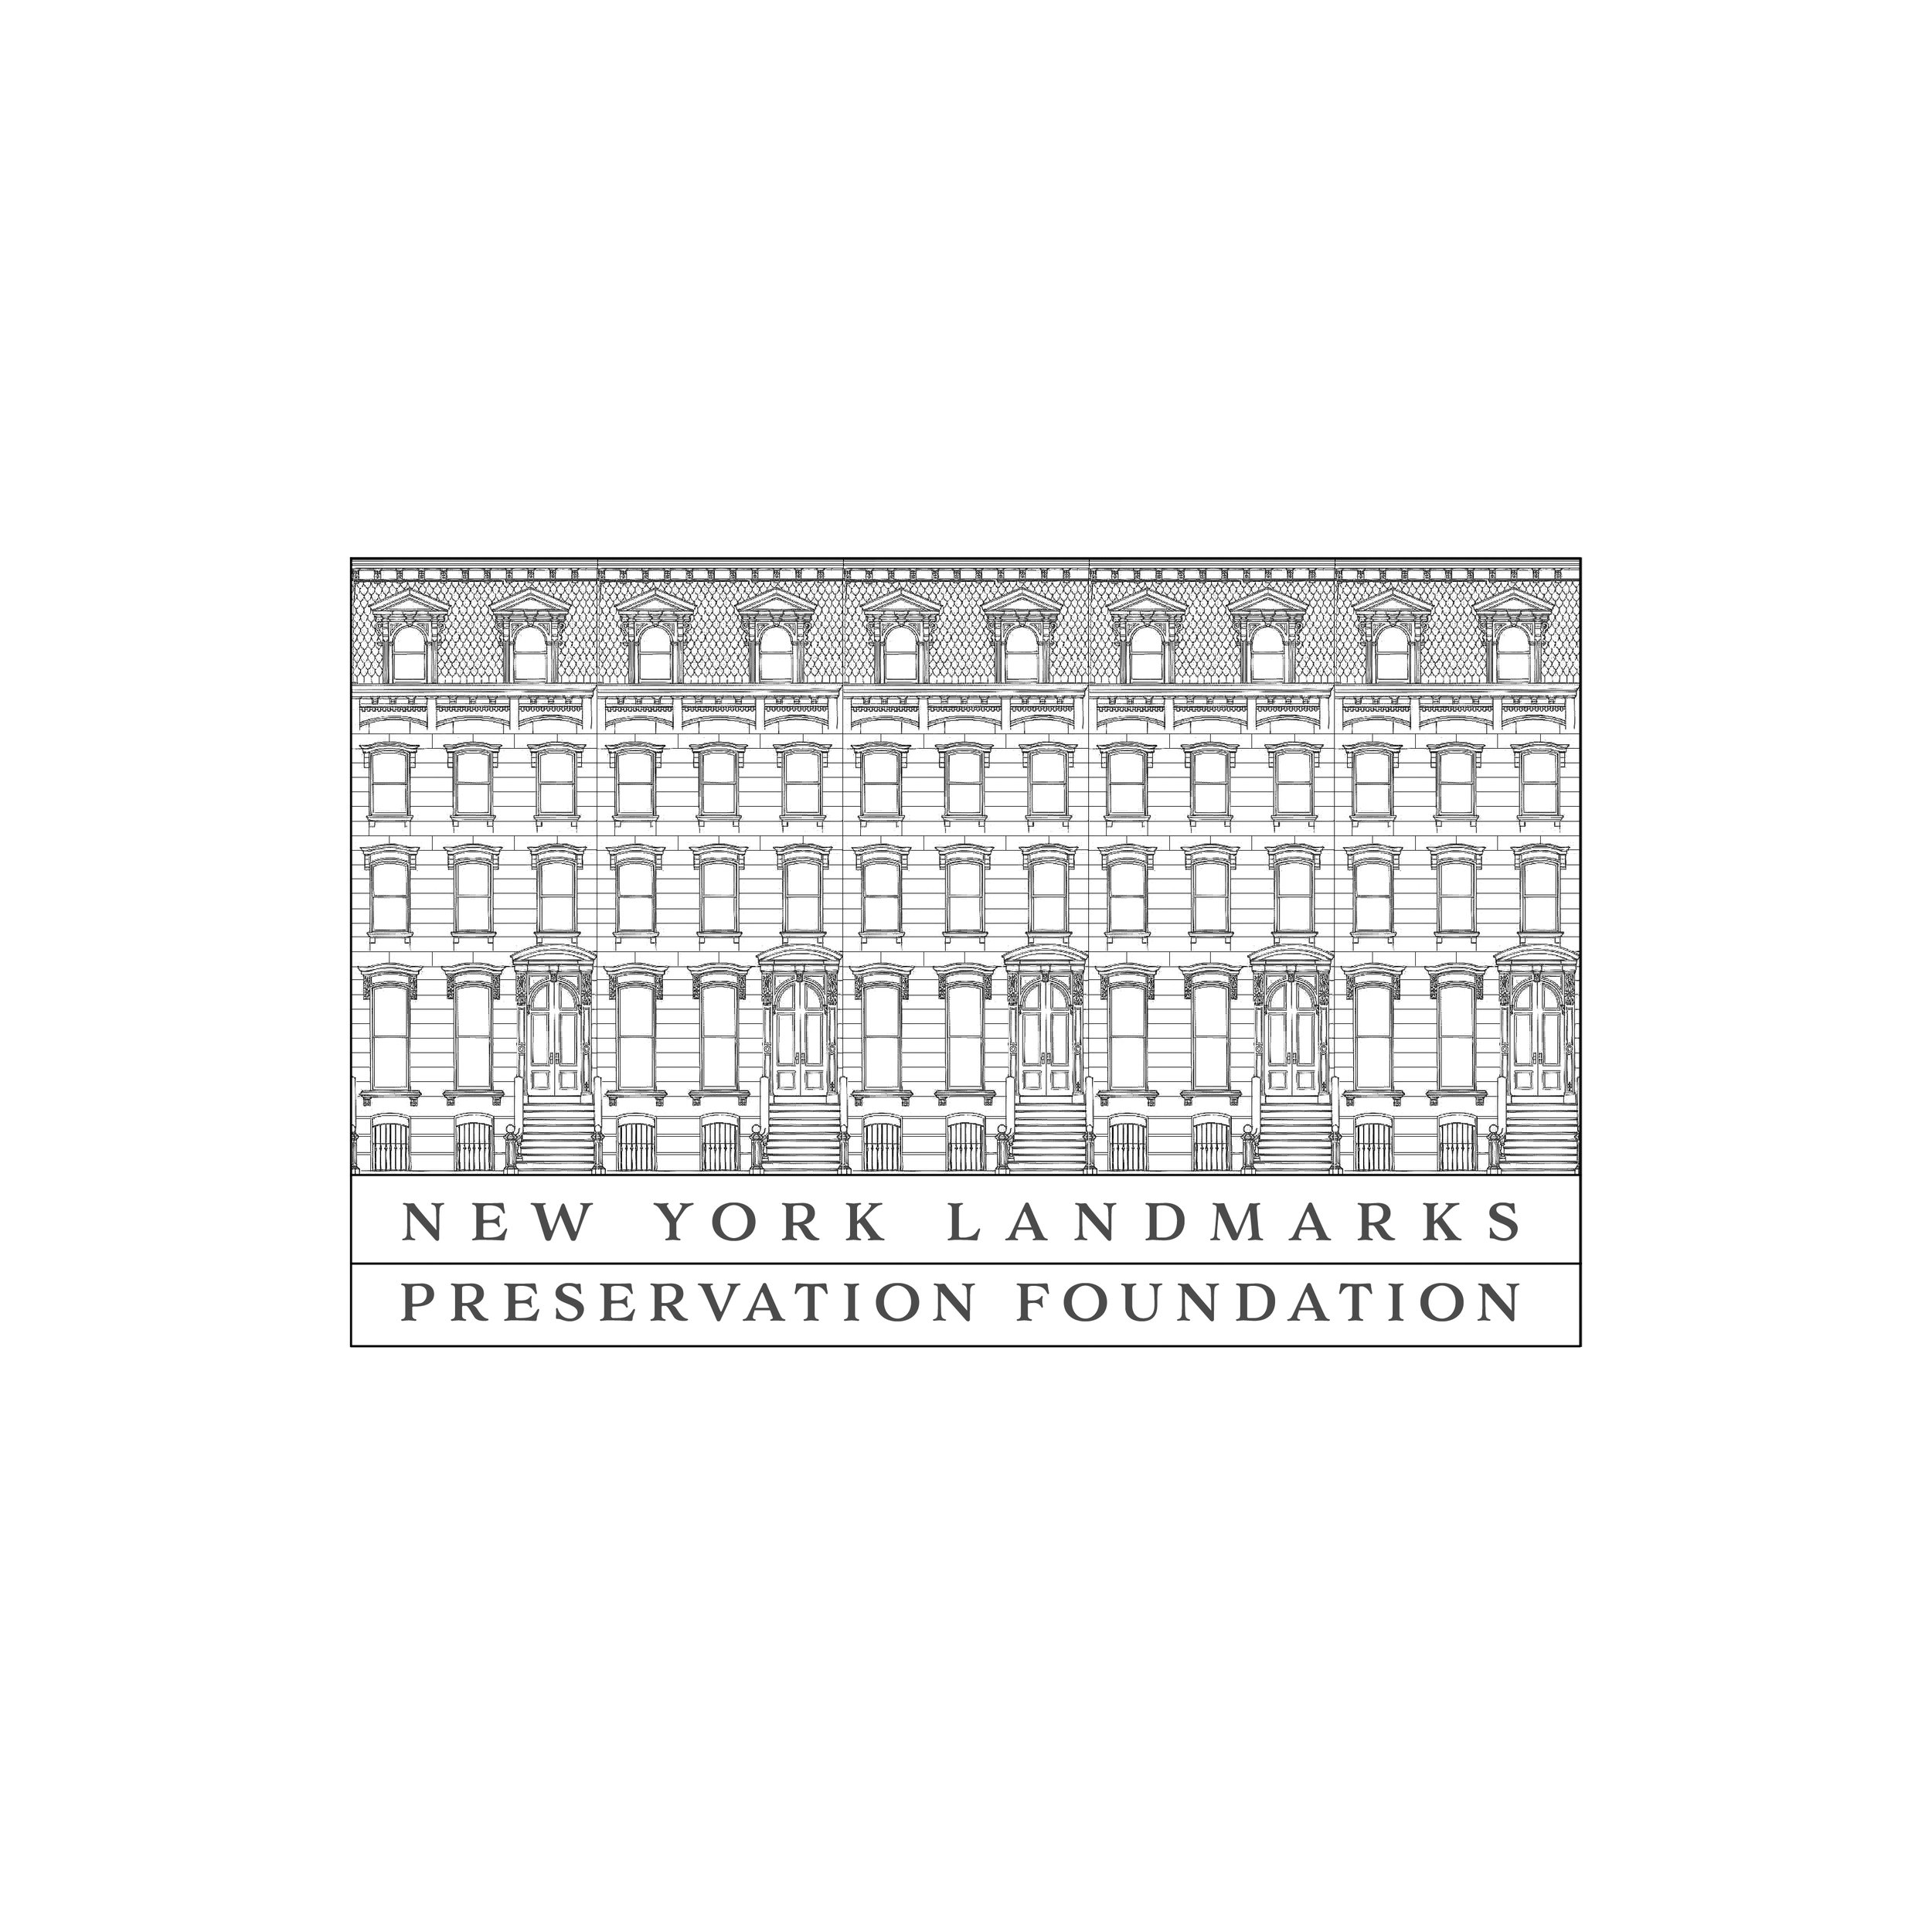 080919 OFFICIAL NYLPF LOGO - with white square background.jpg